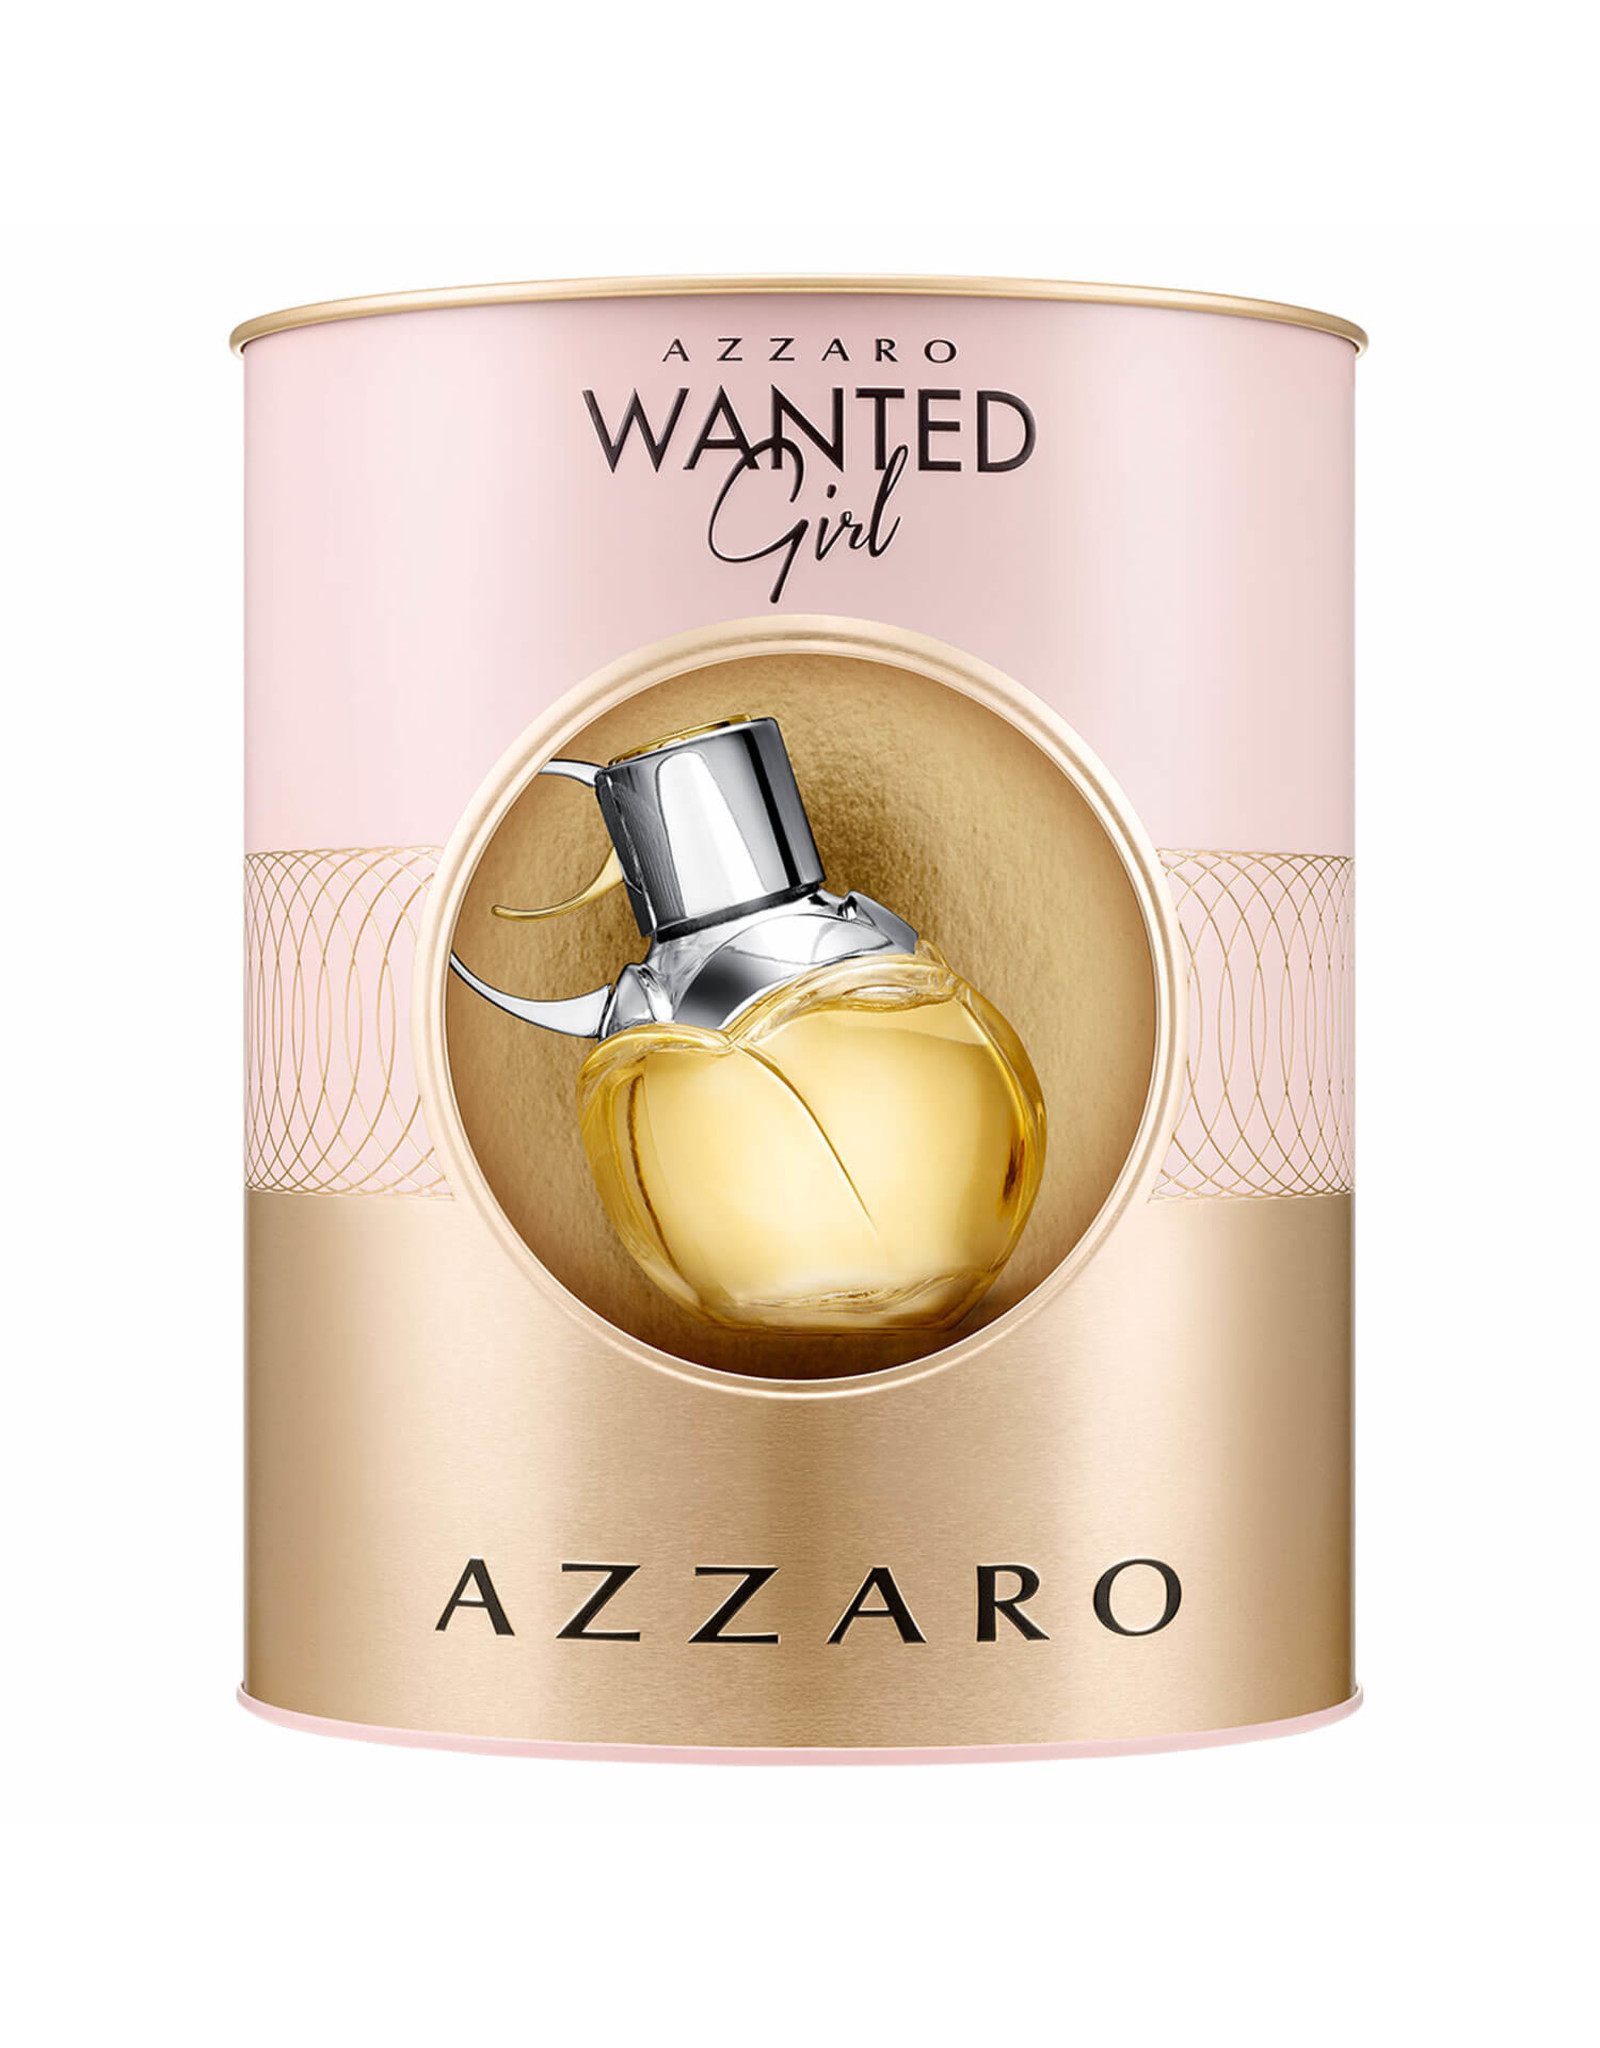 AZZARO AZZARO WANTED GIRL 2pc Set